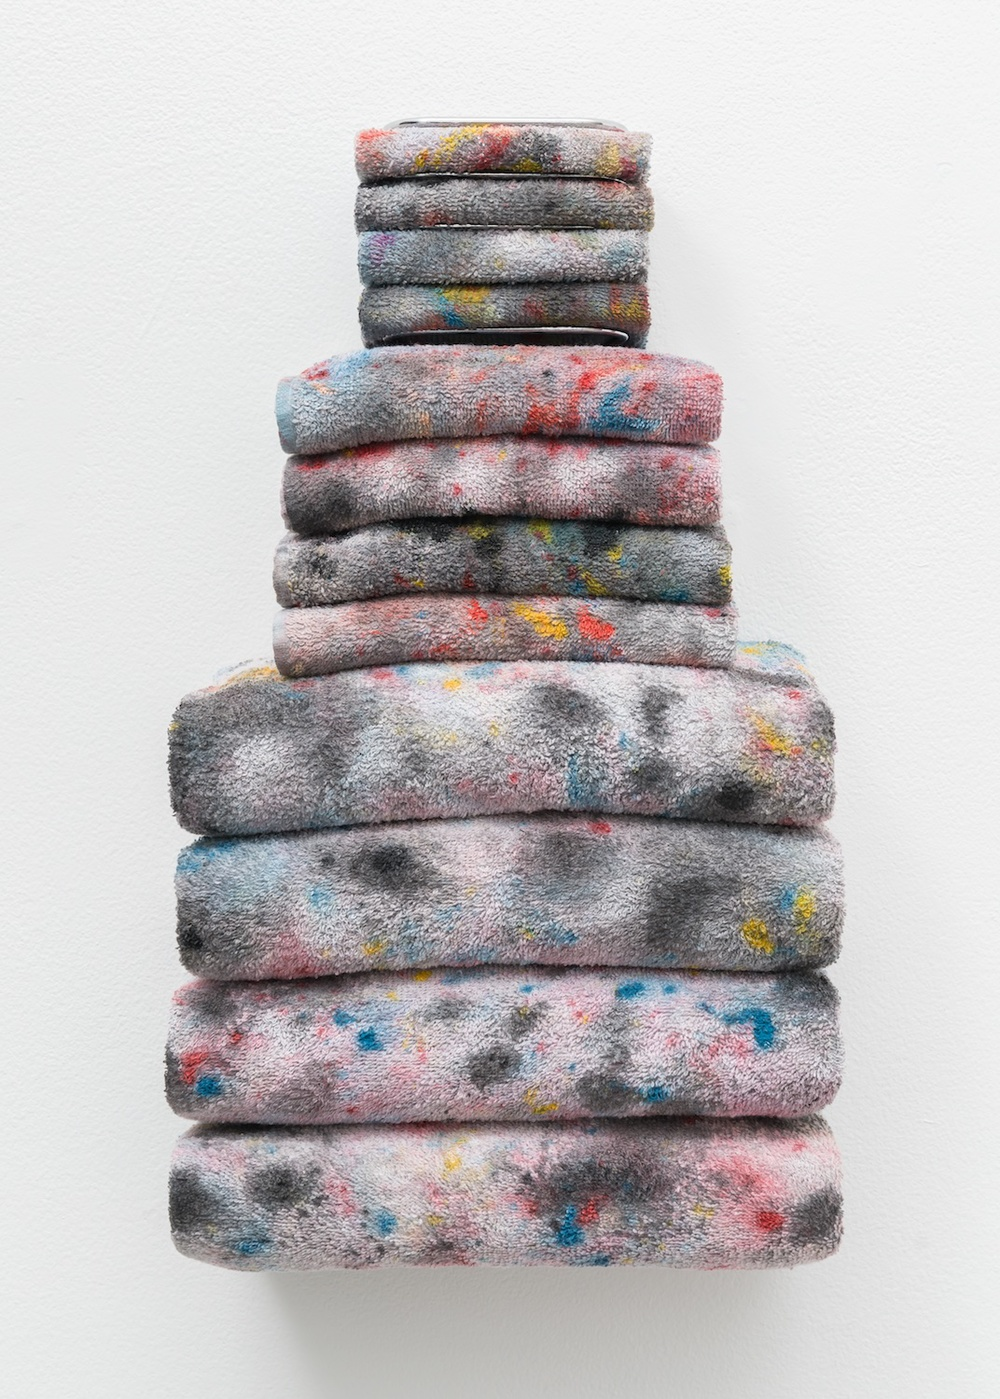 Amanda Ross-Ho  Untitled Textile Arrangement (TOWEL RACK #4)  2014 Chrome towel rack, acrylic and dye on washcloths, hand towels and bath towels 21h x 11 ½w x 7d in ARH105